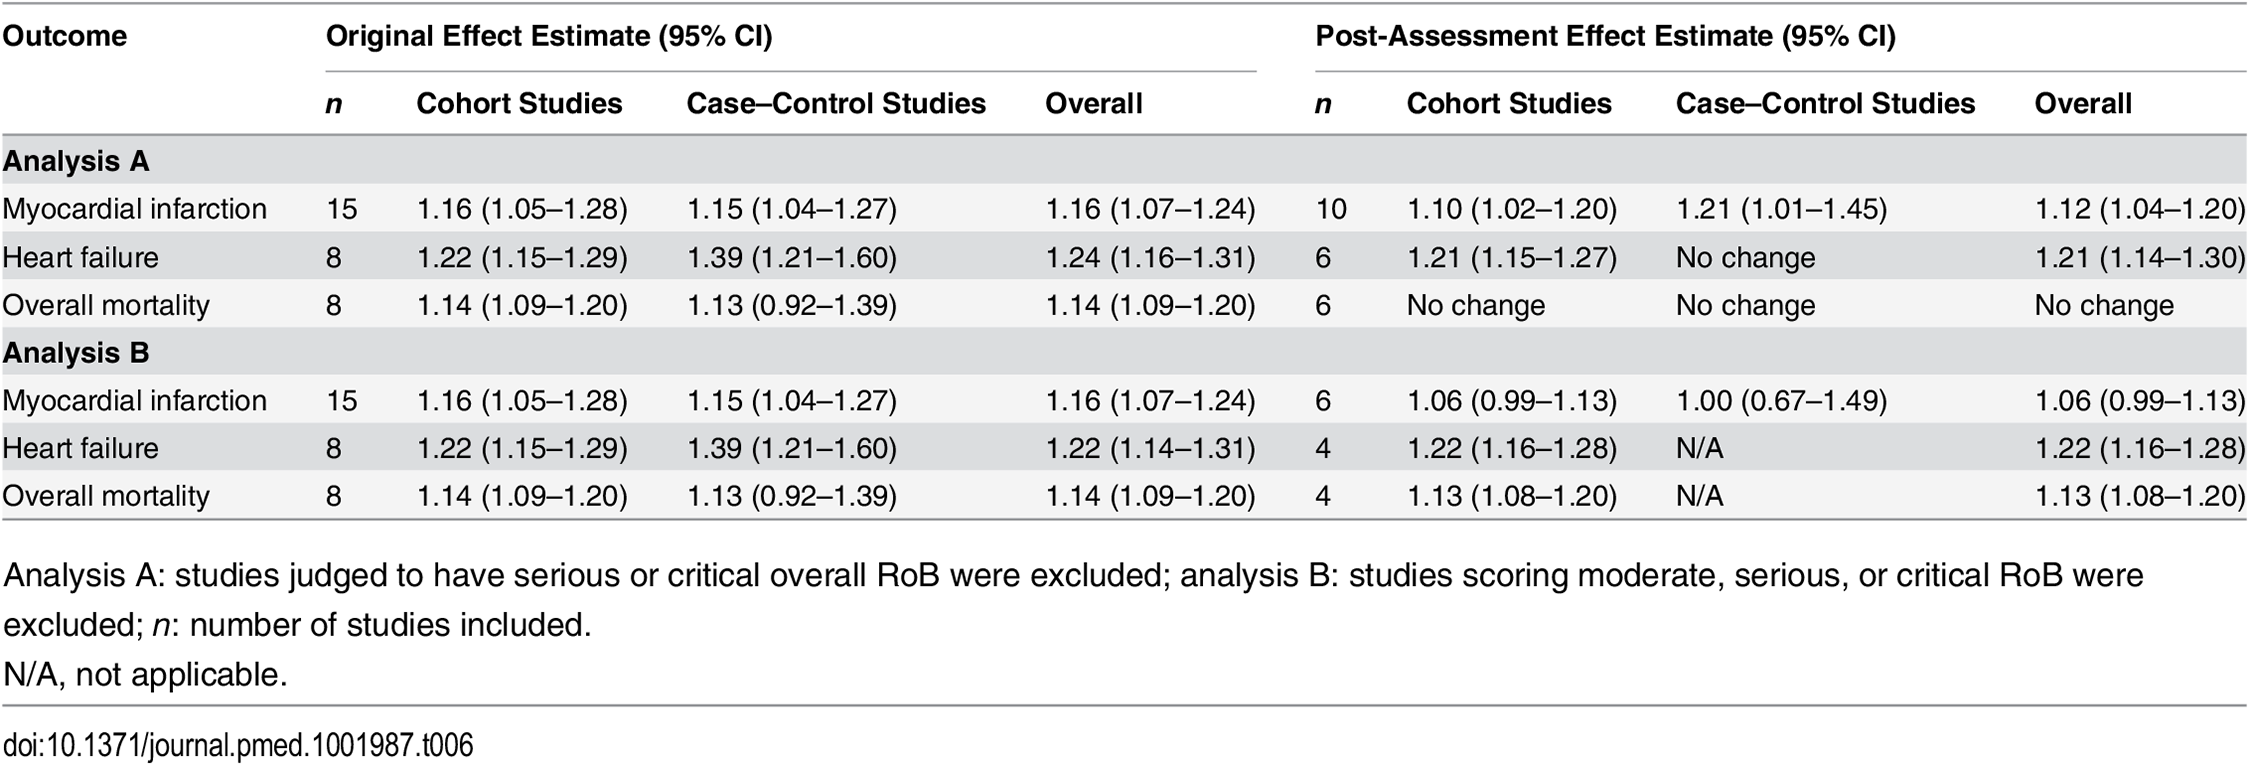 Risk estimates from meta-analyses: comparison of original estimates with post-assessment estimates for the systematic review by Loke et al. [<em class=&quot;ref&quot;>17</em>].